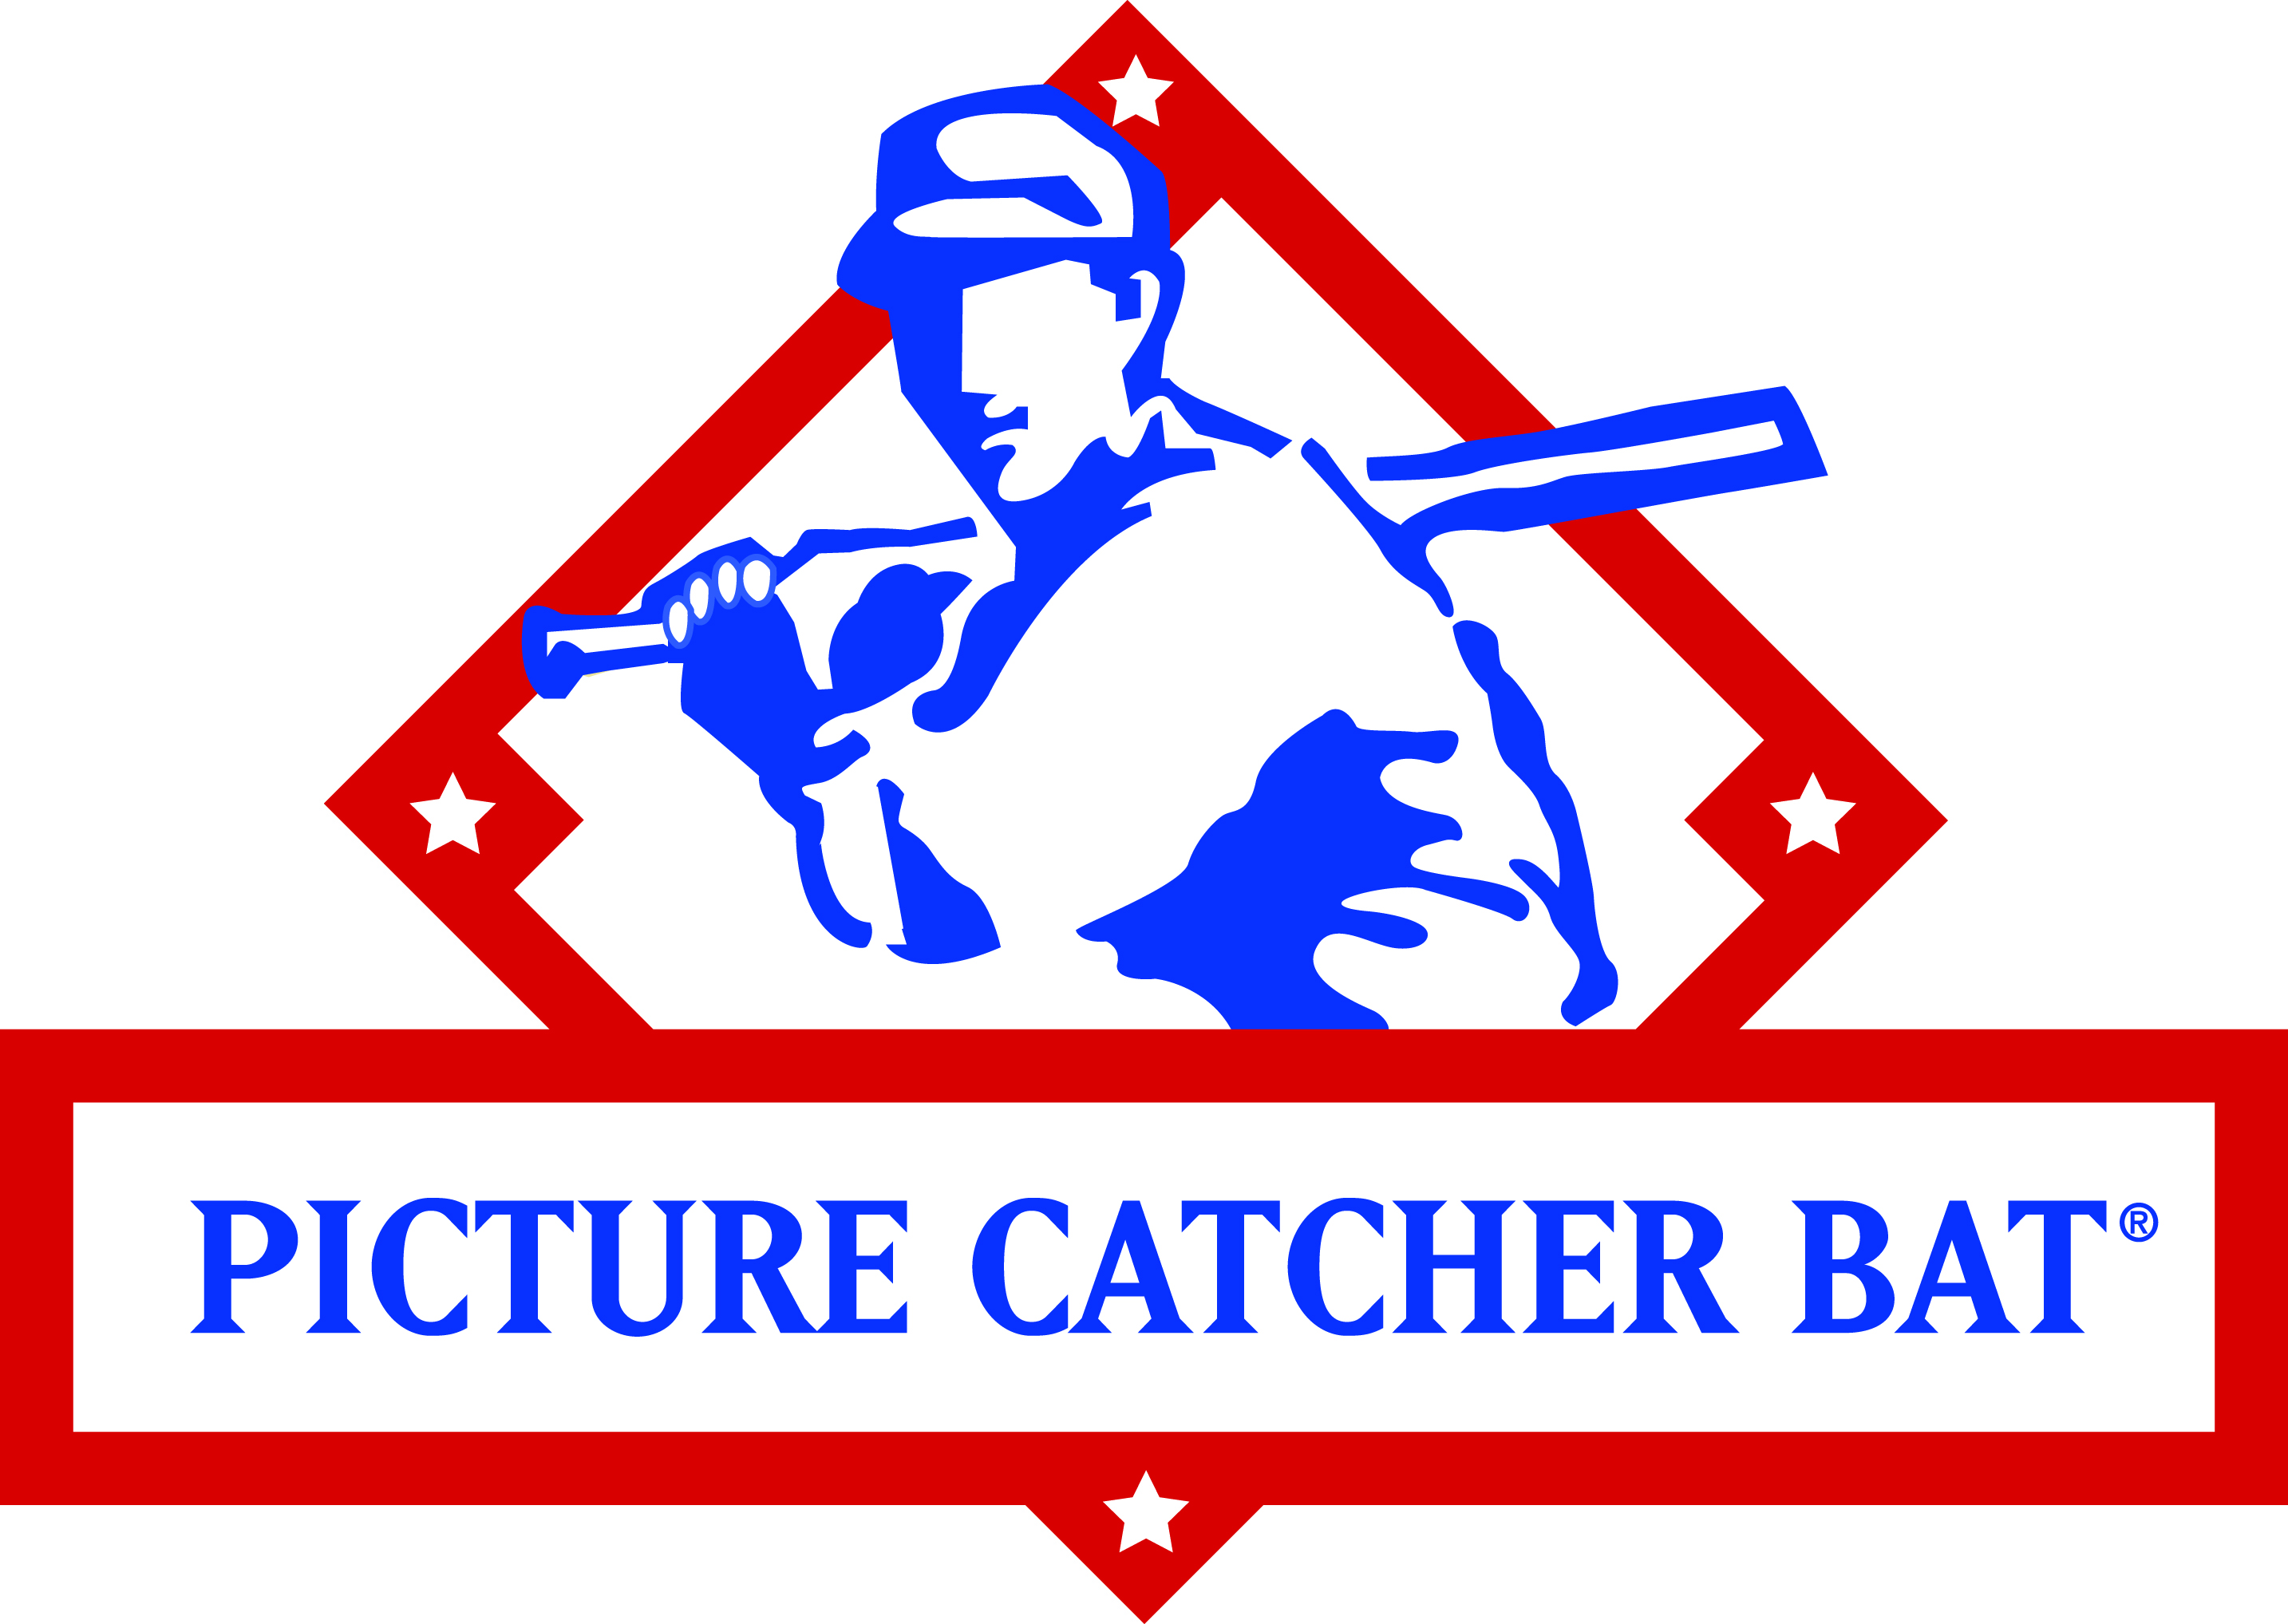 Picture Catcher Bat